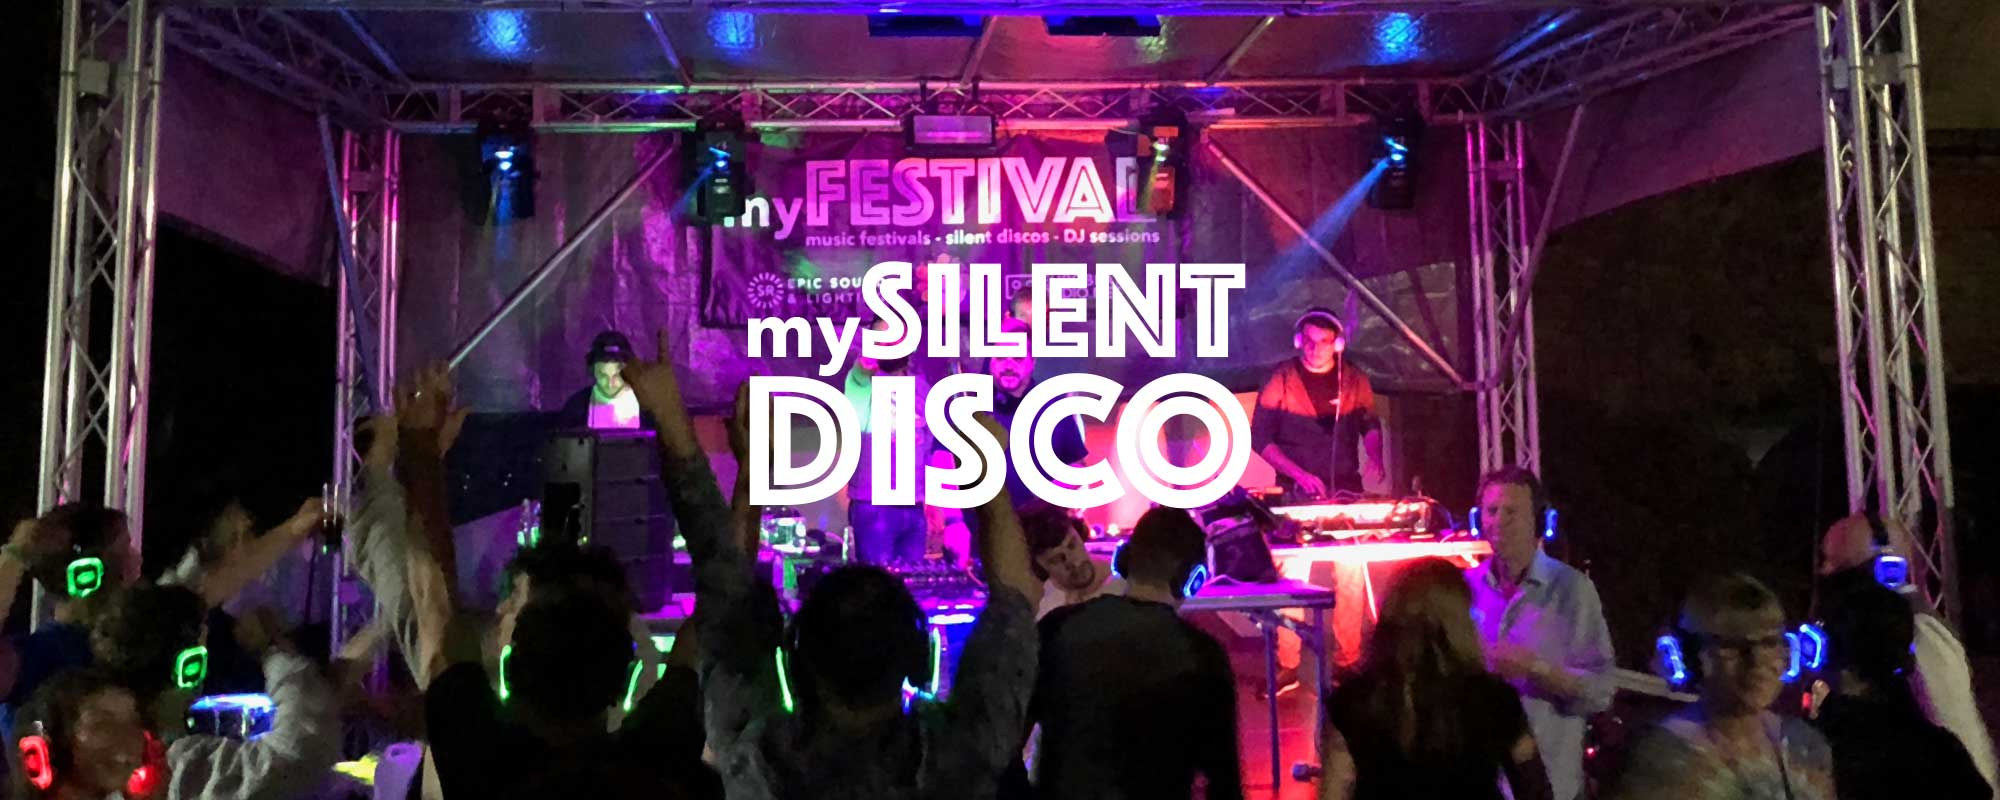 Outdoor silent disco with DJs on stage